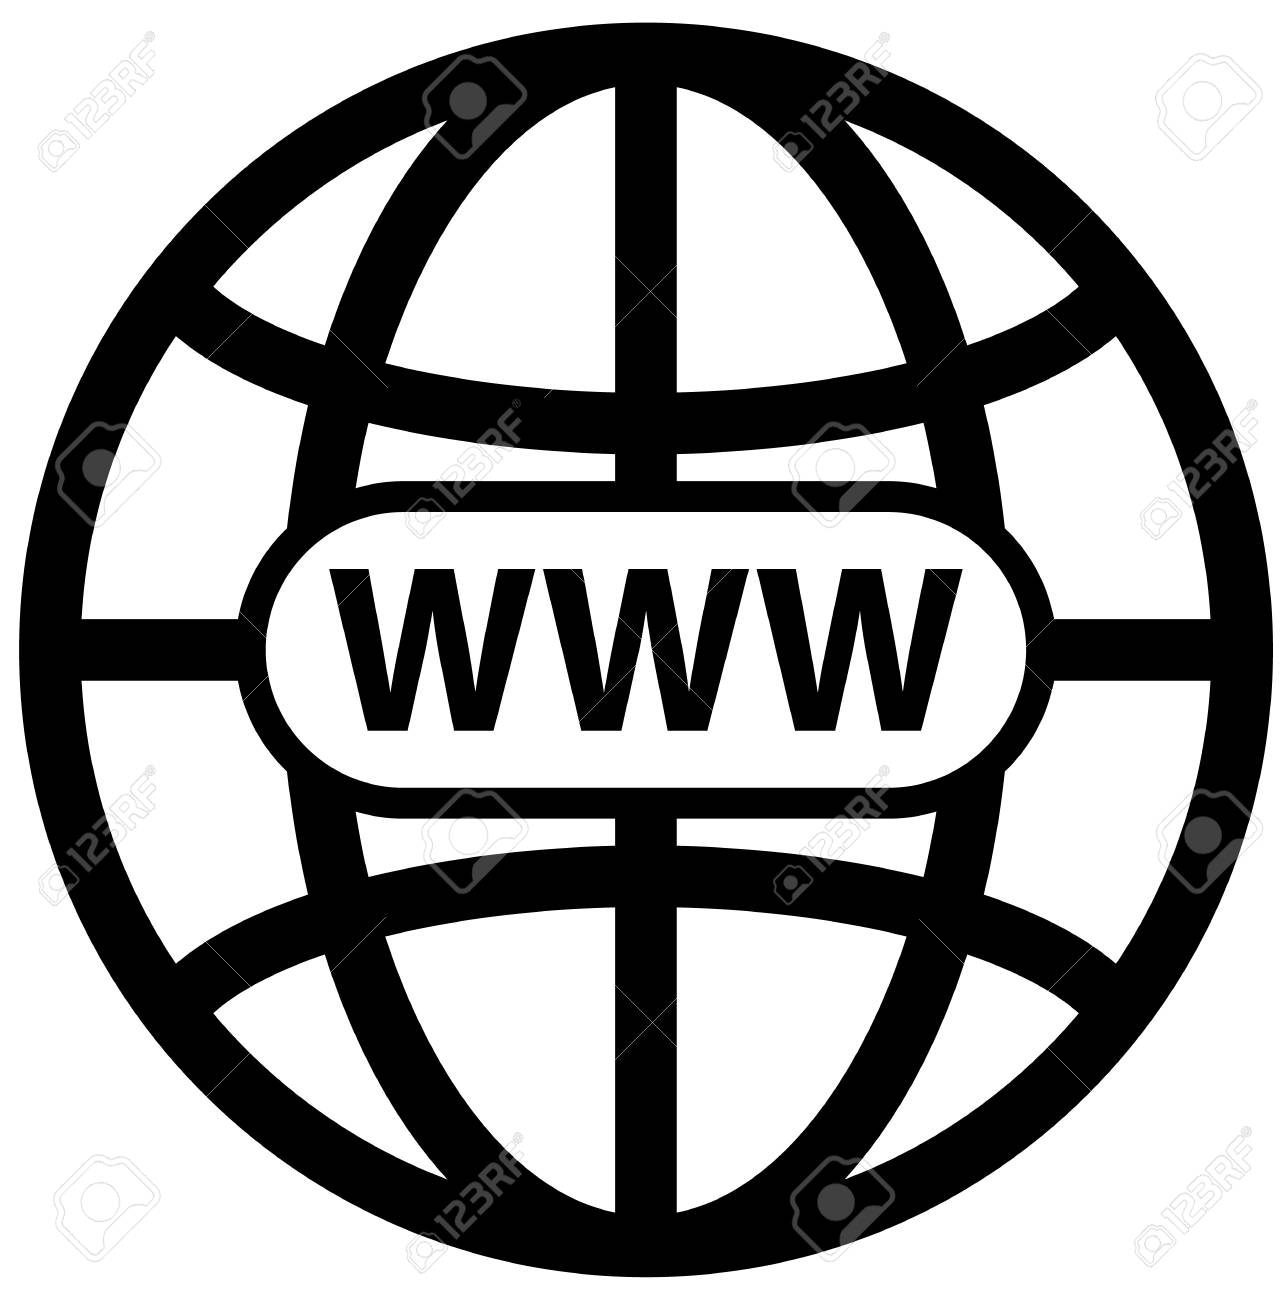 Black world wide web globe symbol vector icon Stock Vector - 85442031